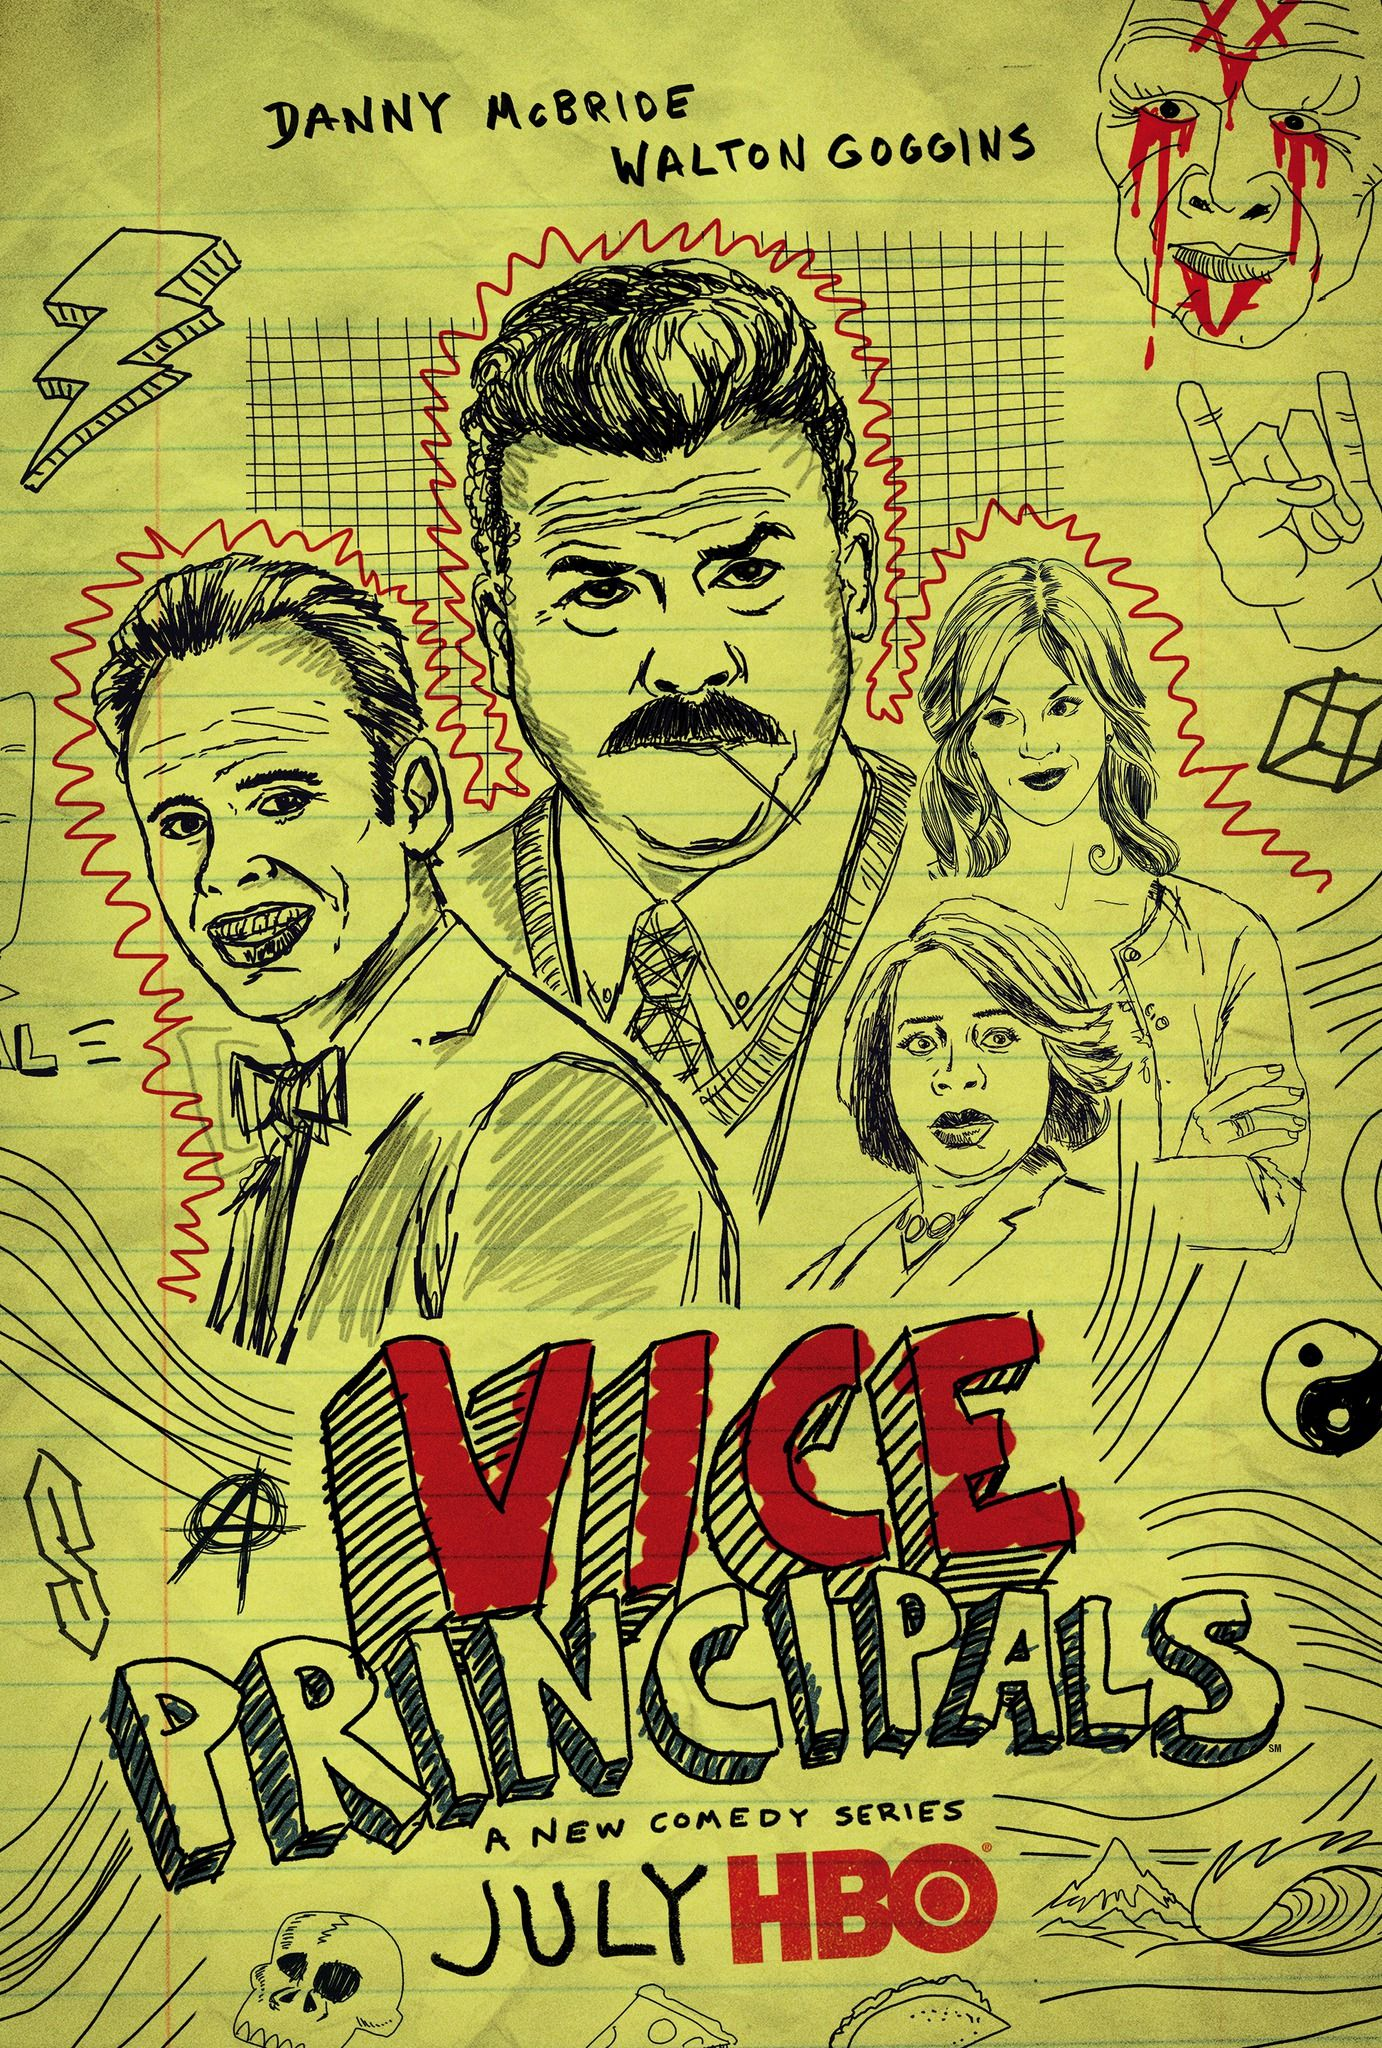 Return to the main poster page for Vice Principals (1 of